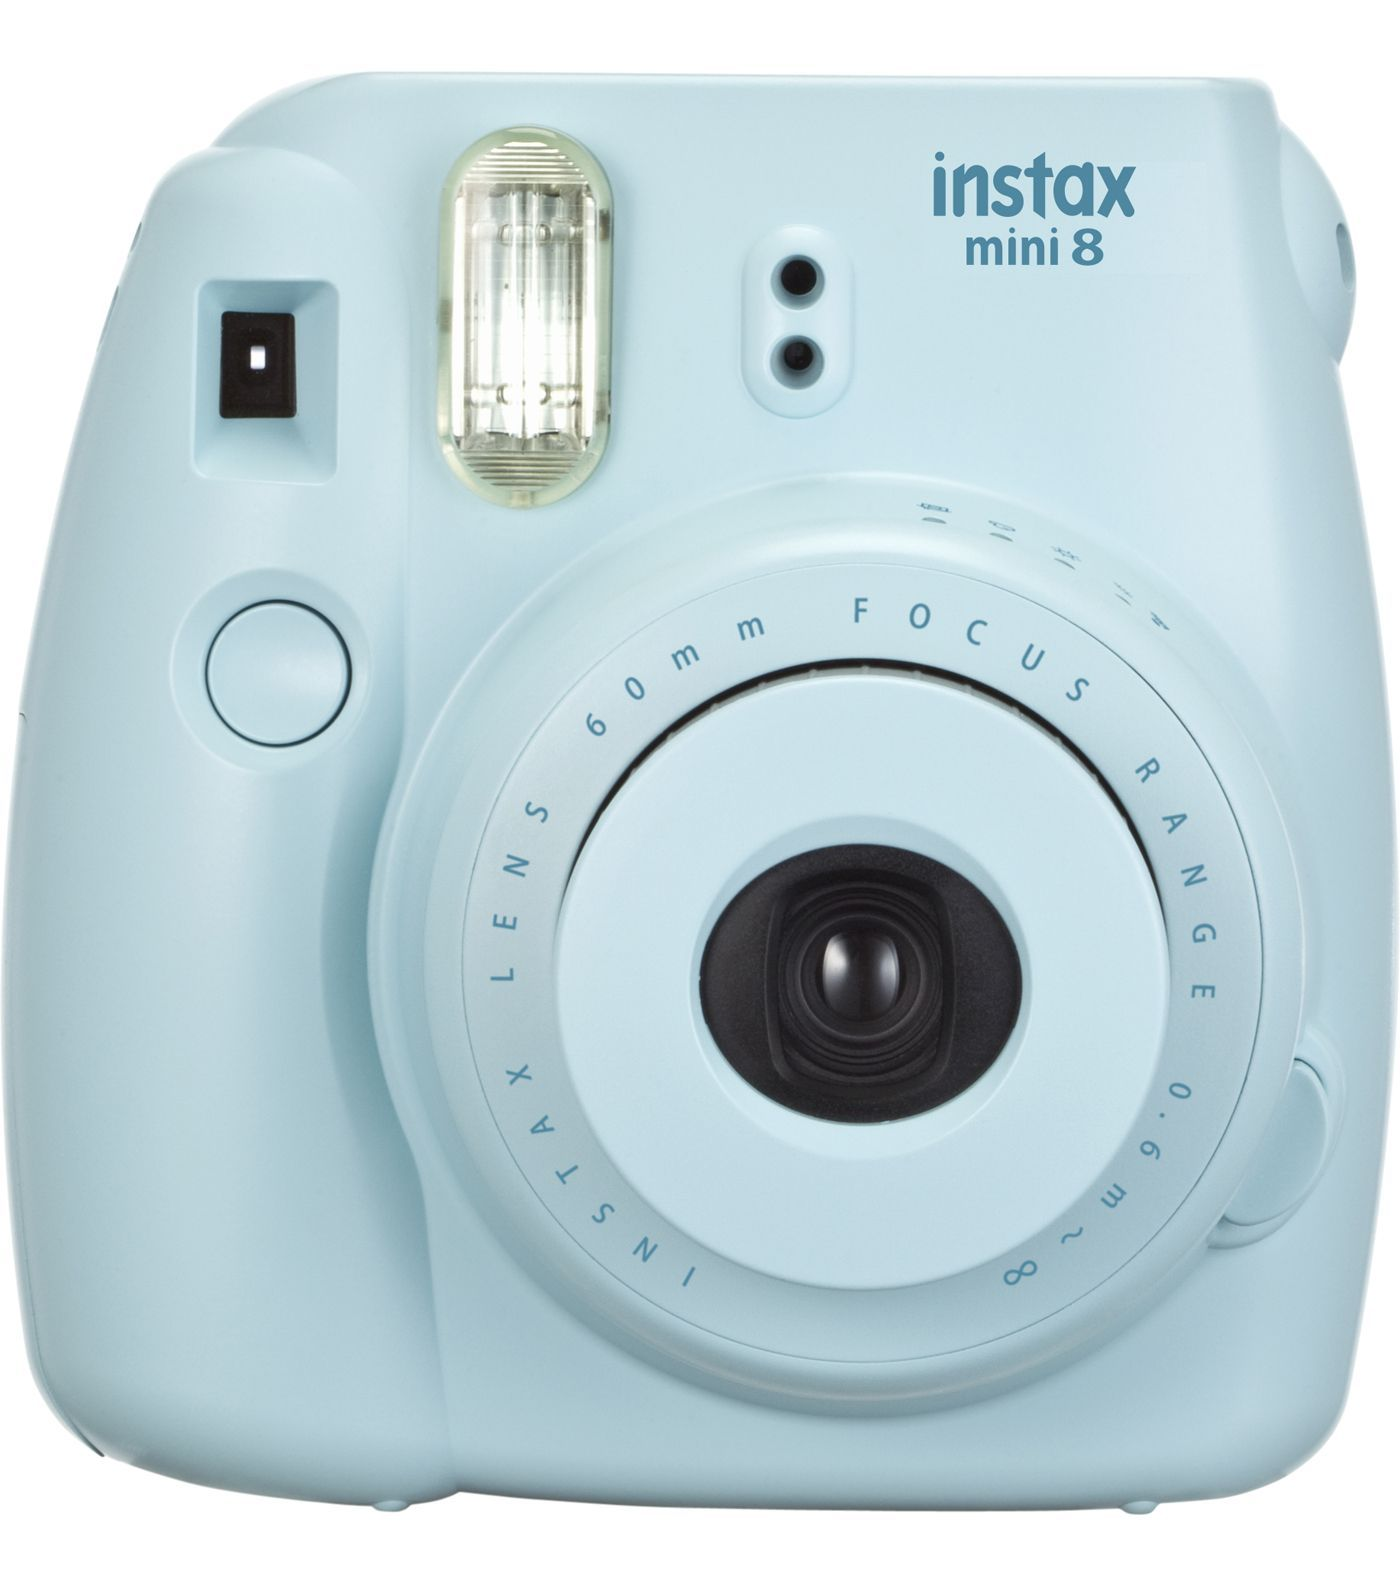 Suuuper cute camera + Color!  Fujifilm Instax Mini 8 Instant Camera, BlueFujifilm Instax Mini 8 Instant Camera, Blue,